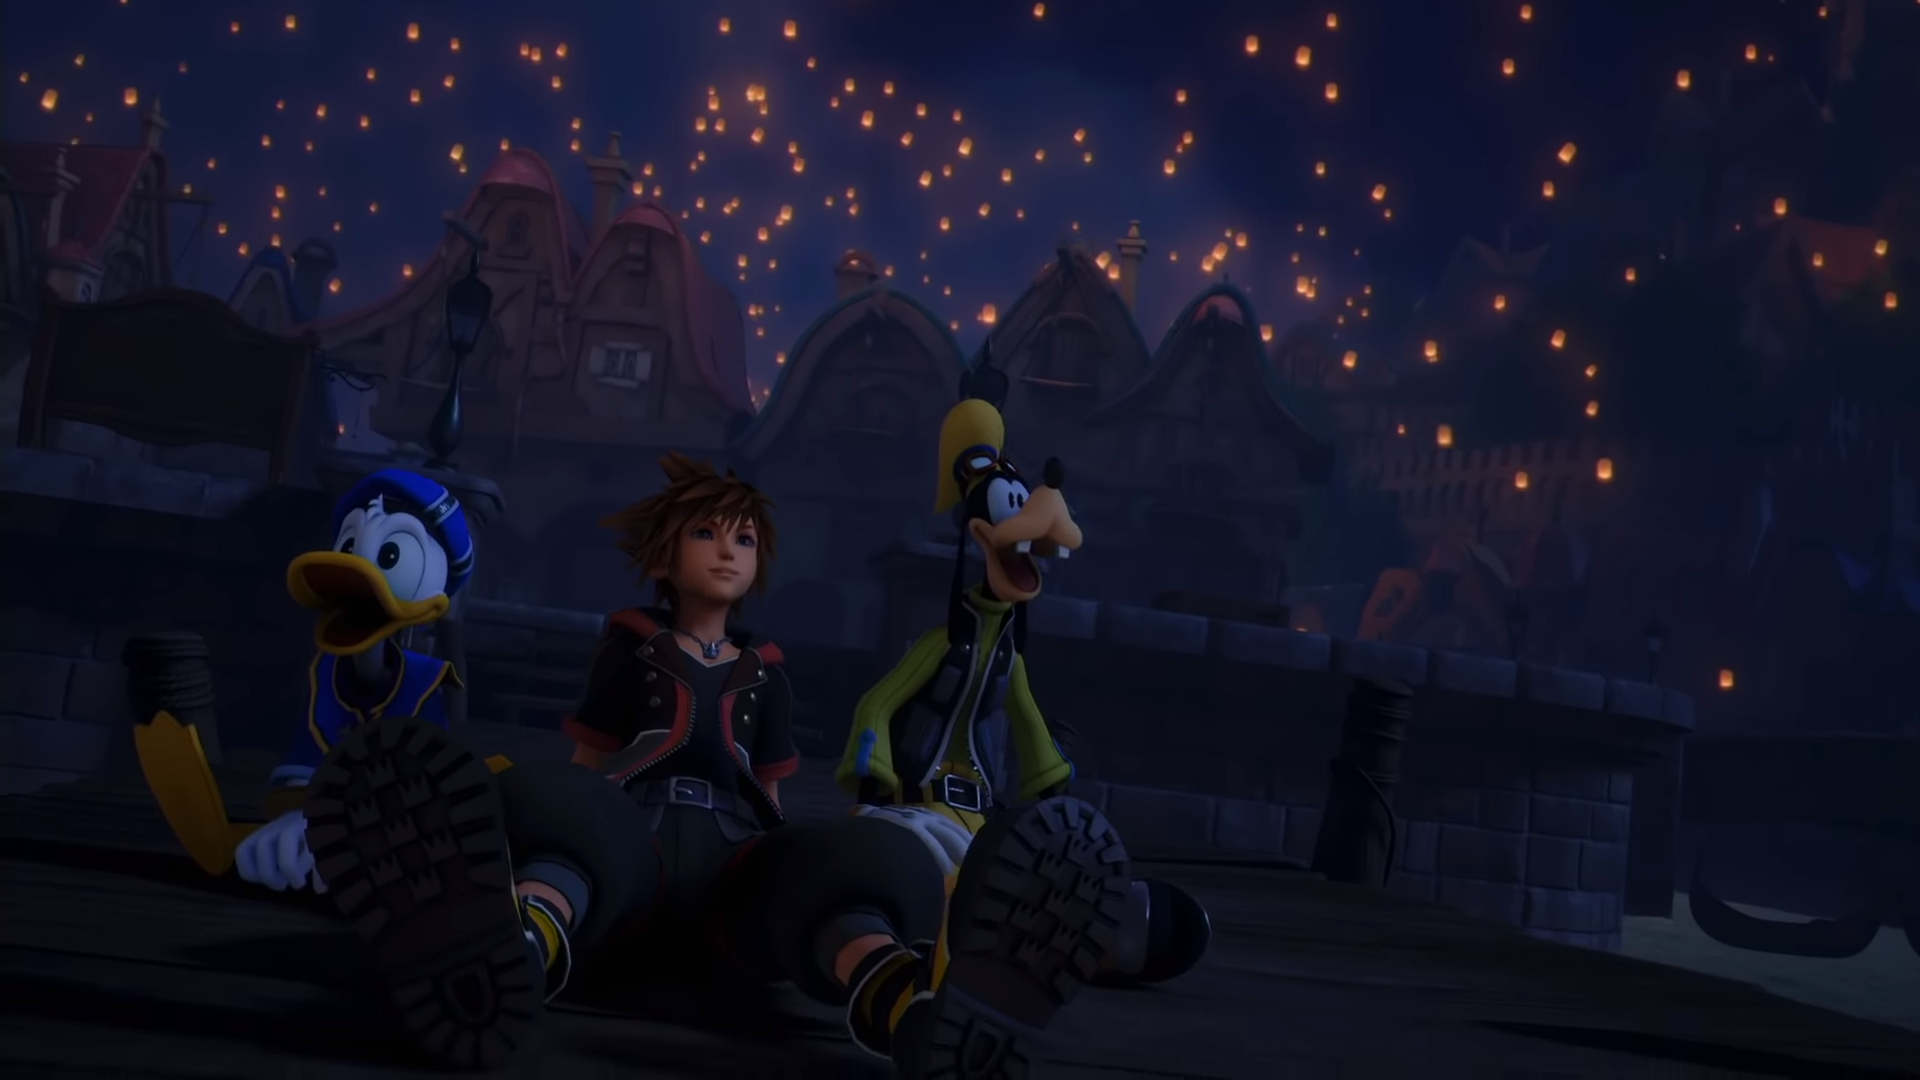 Kingdom Hearts 3 The 4 Biggest Takeaways From The X018 Trailer